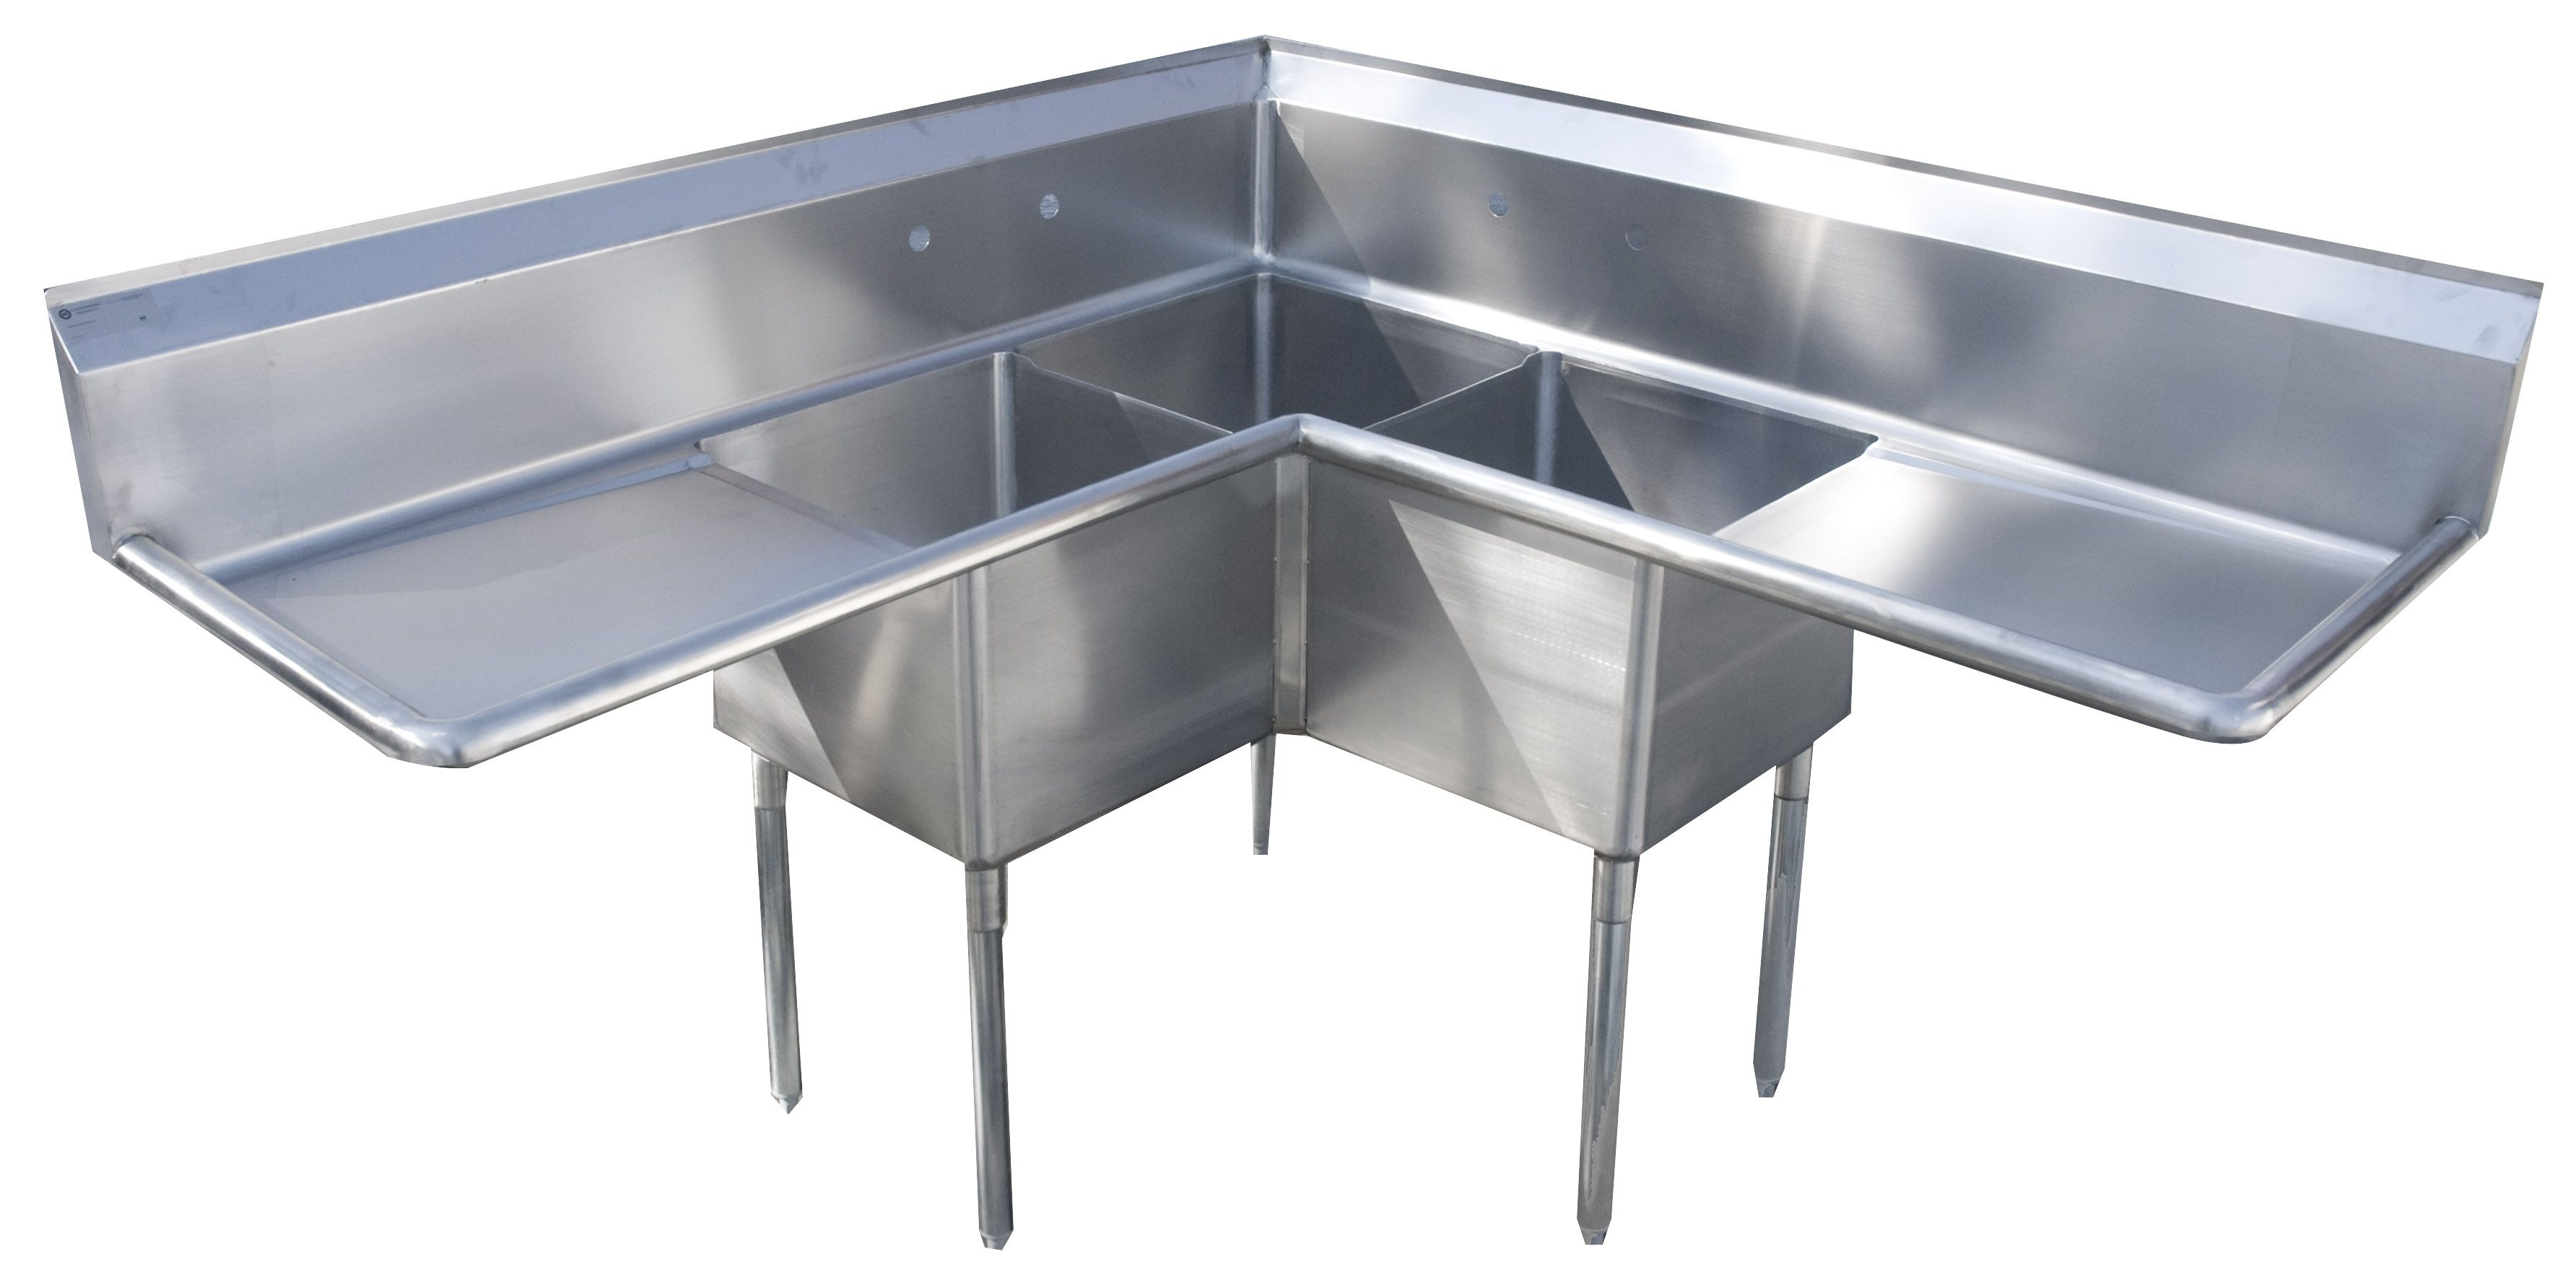 Restaurant Kitchen Sinks Stainless Steel Con Imagenes Estudio